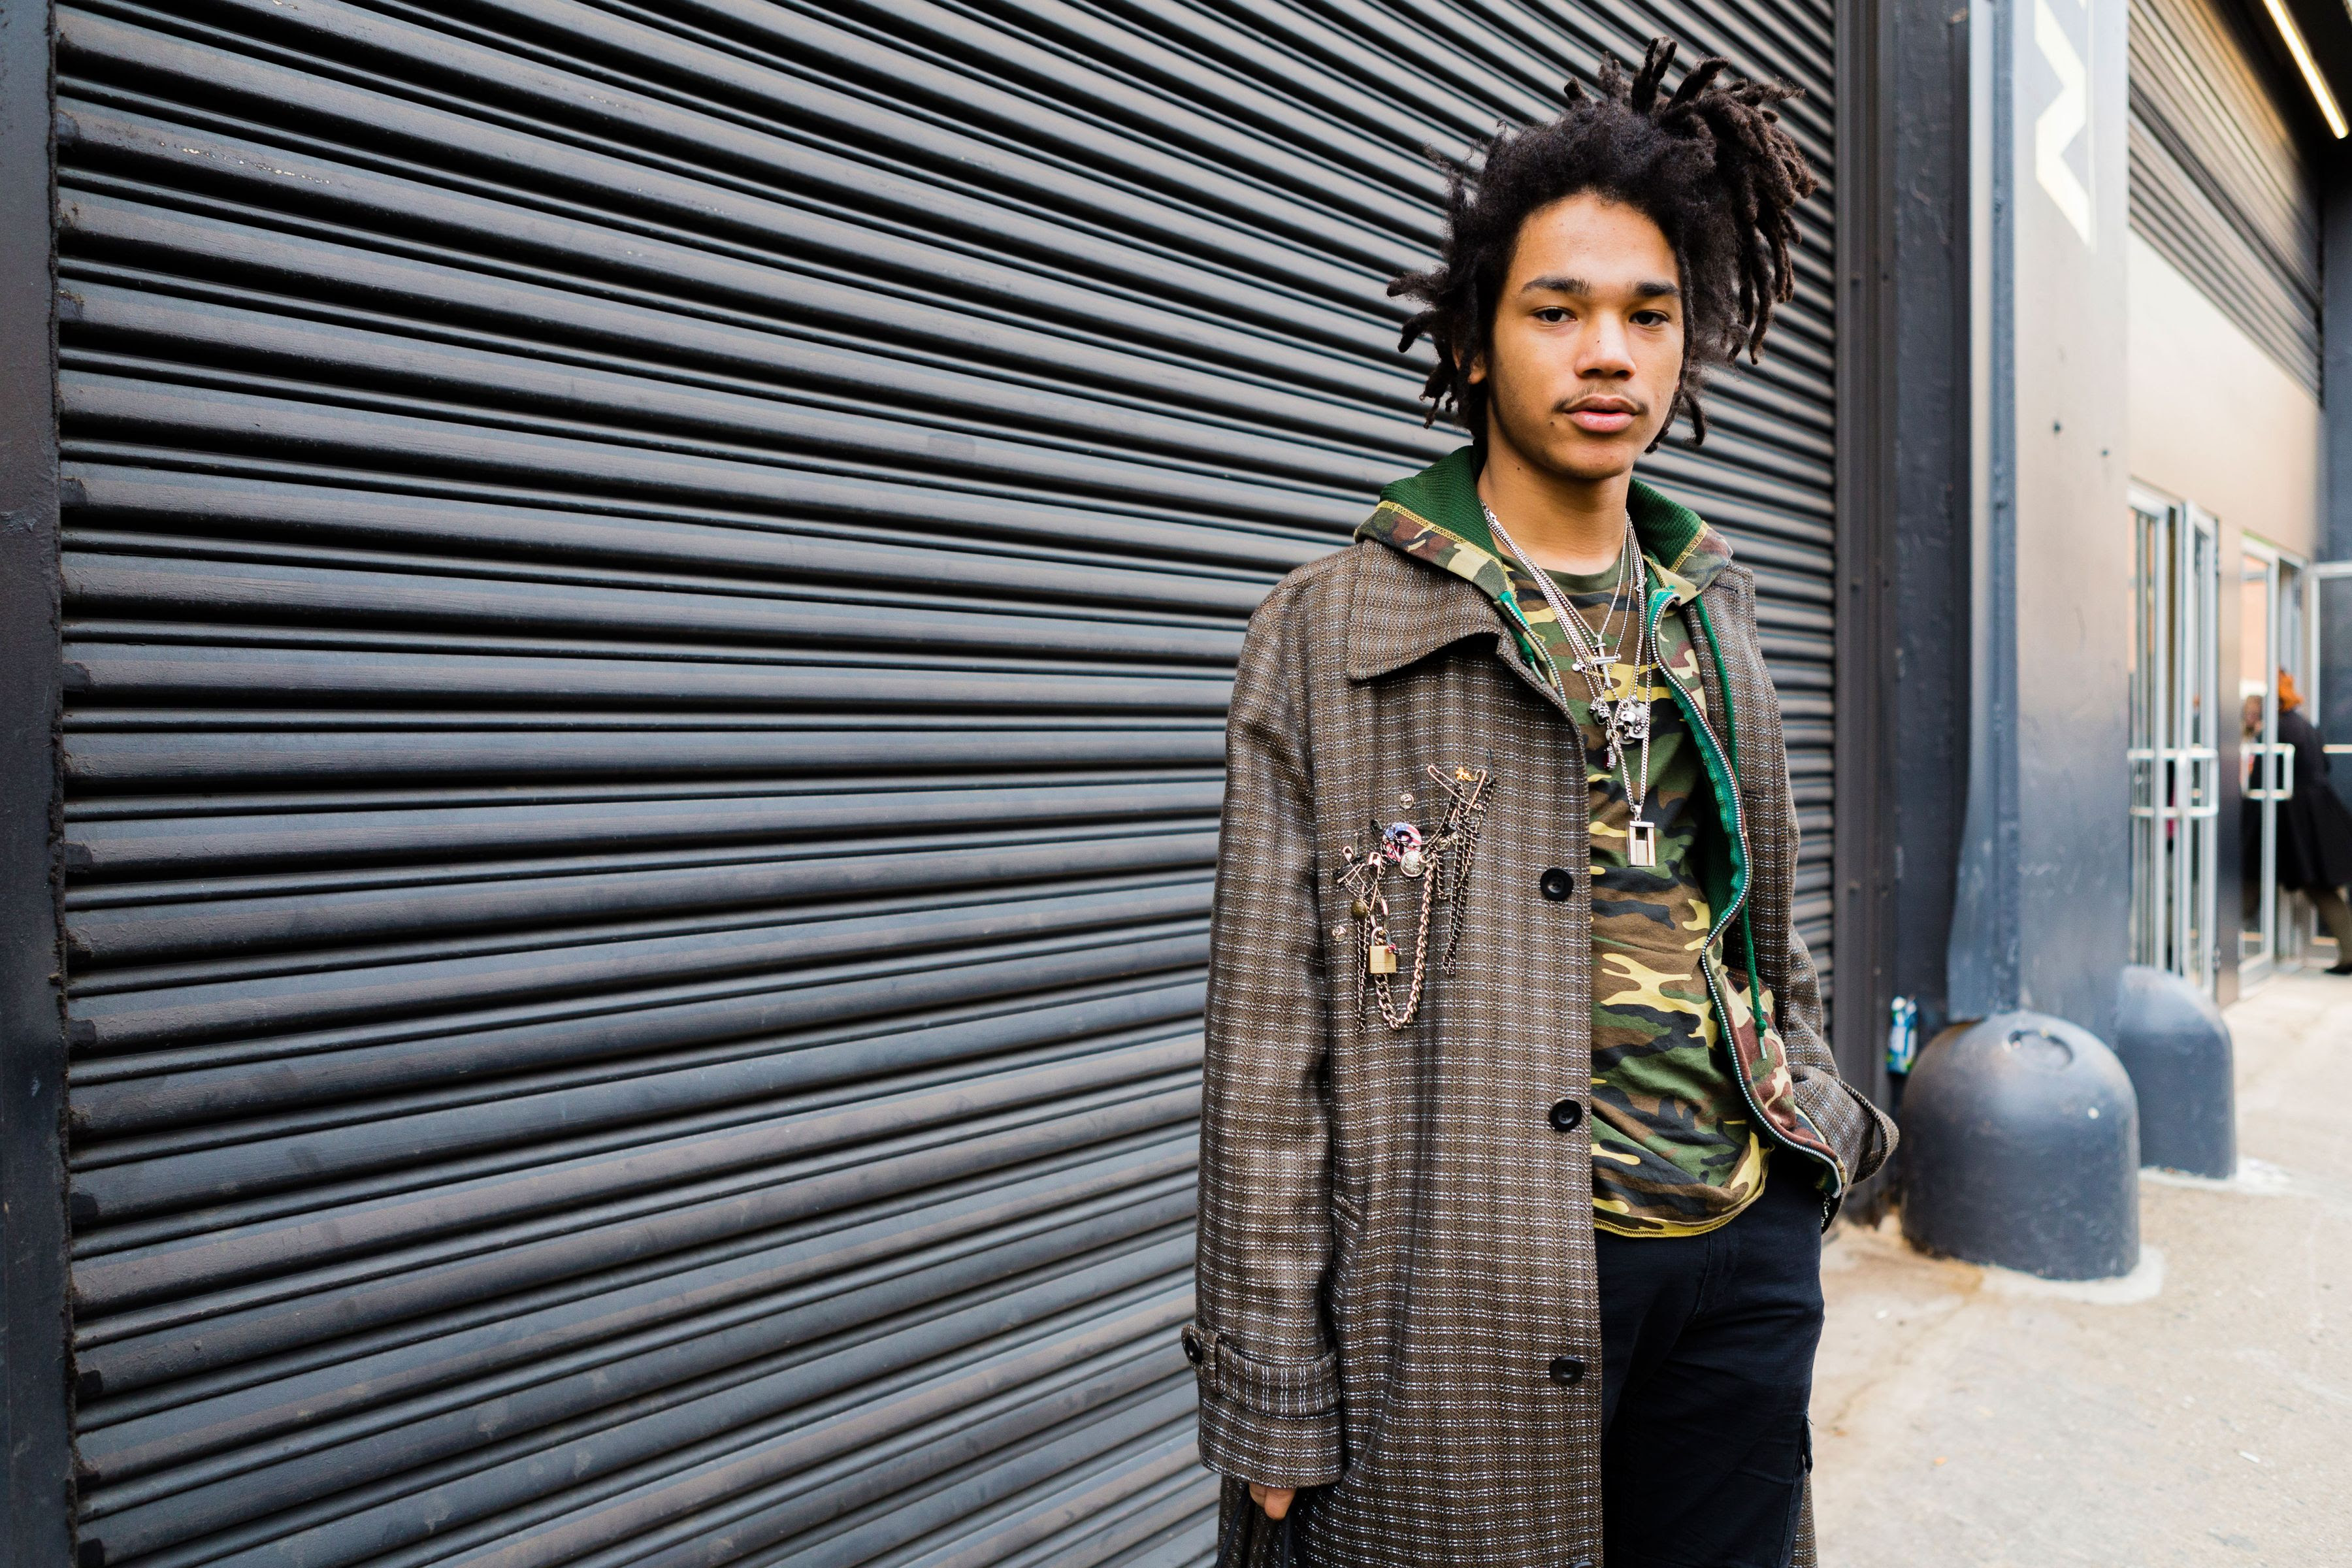 Photo 12 from Luka Sabbat